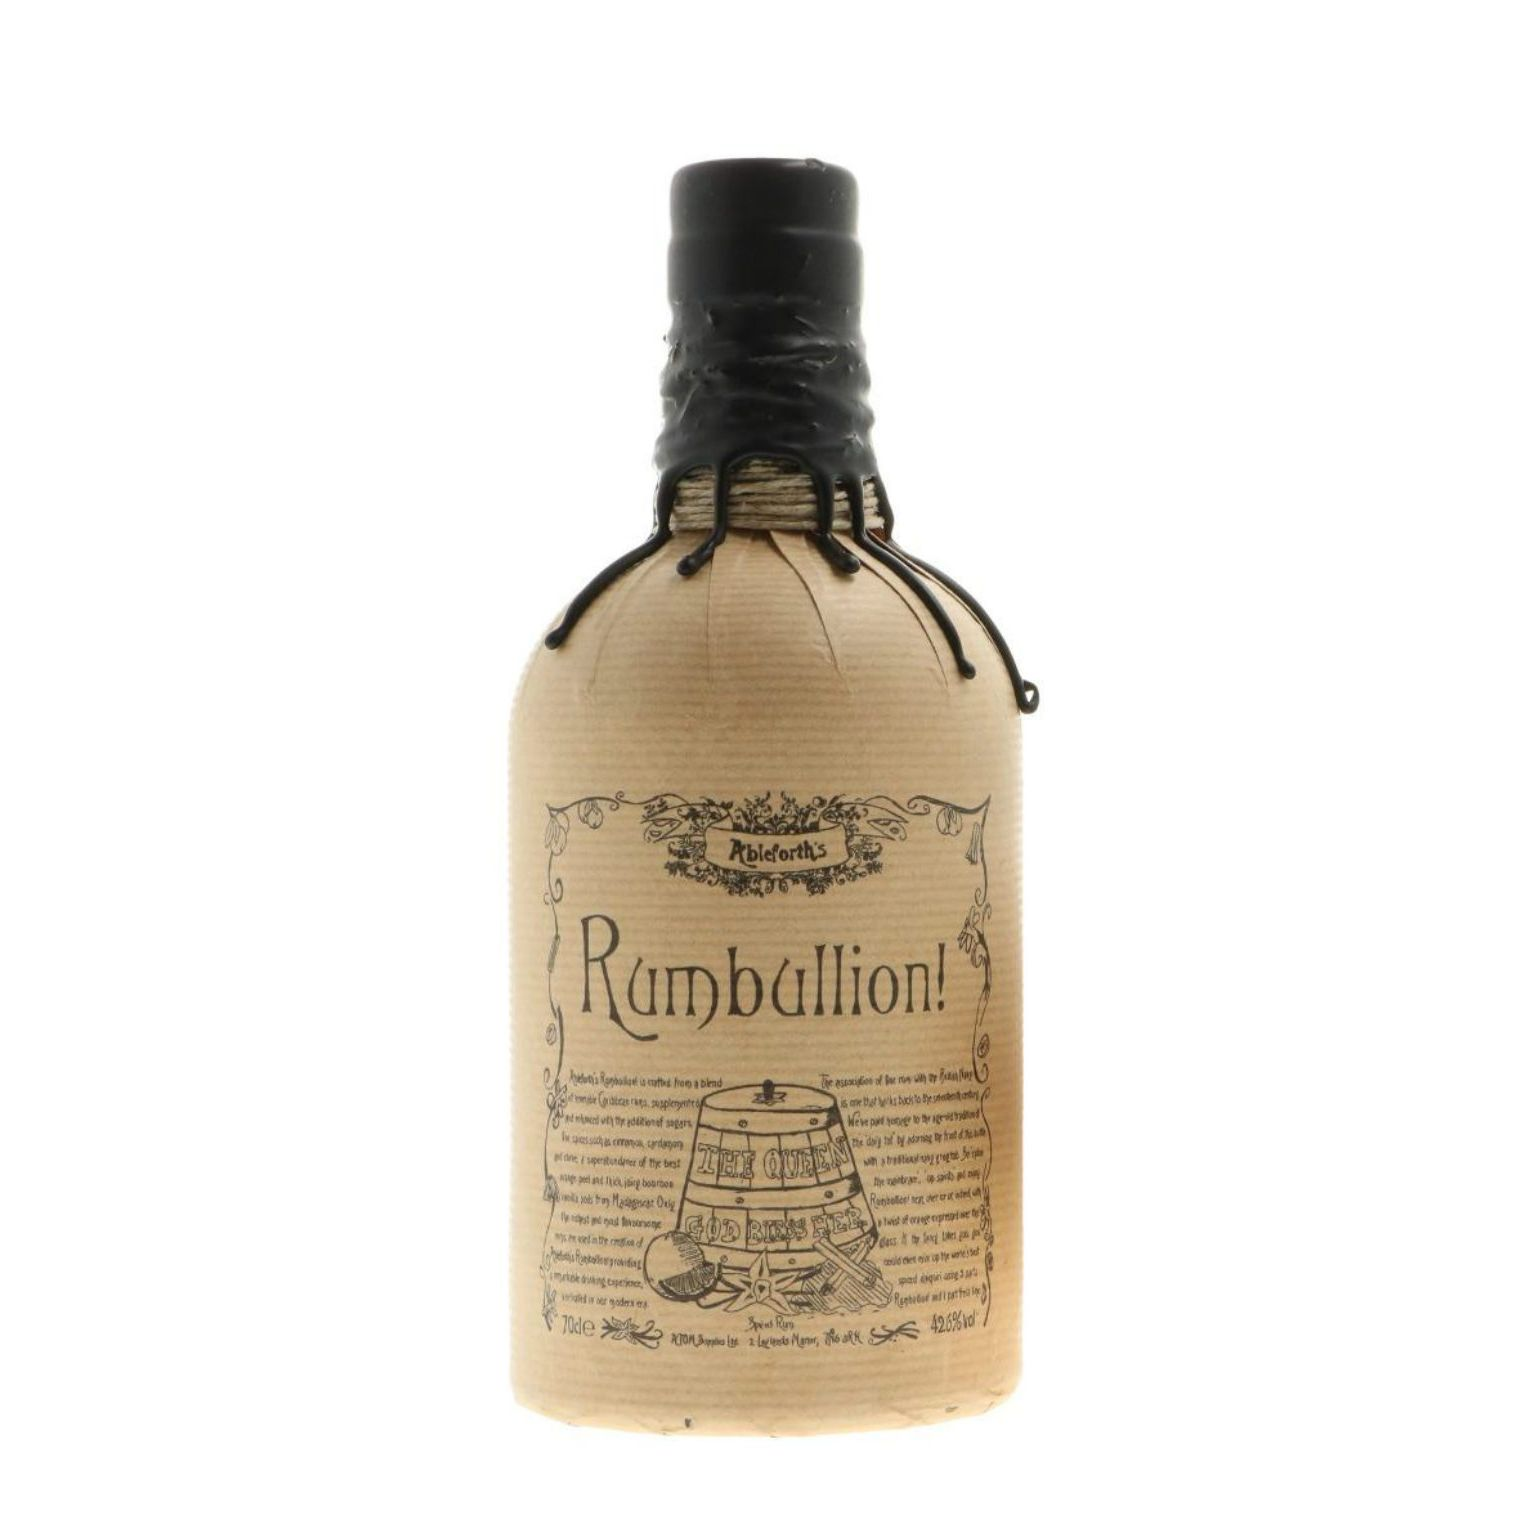 Rumbullion 70cl, Alcoholic Beverages by The Drink Market